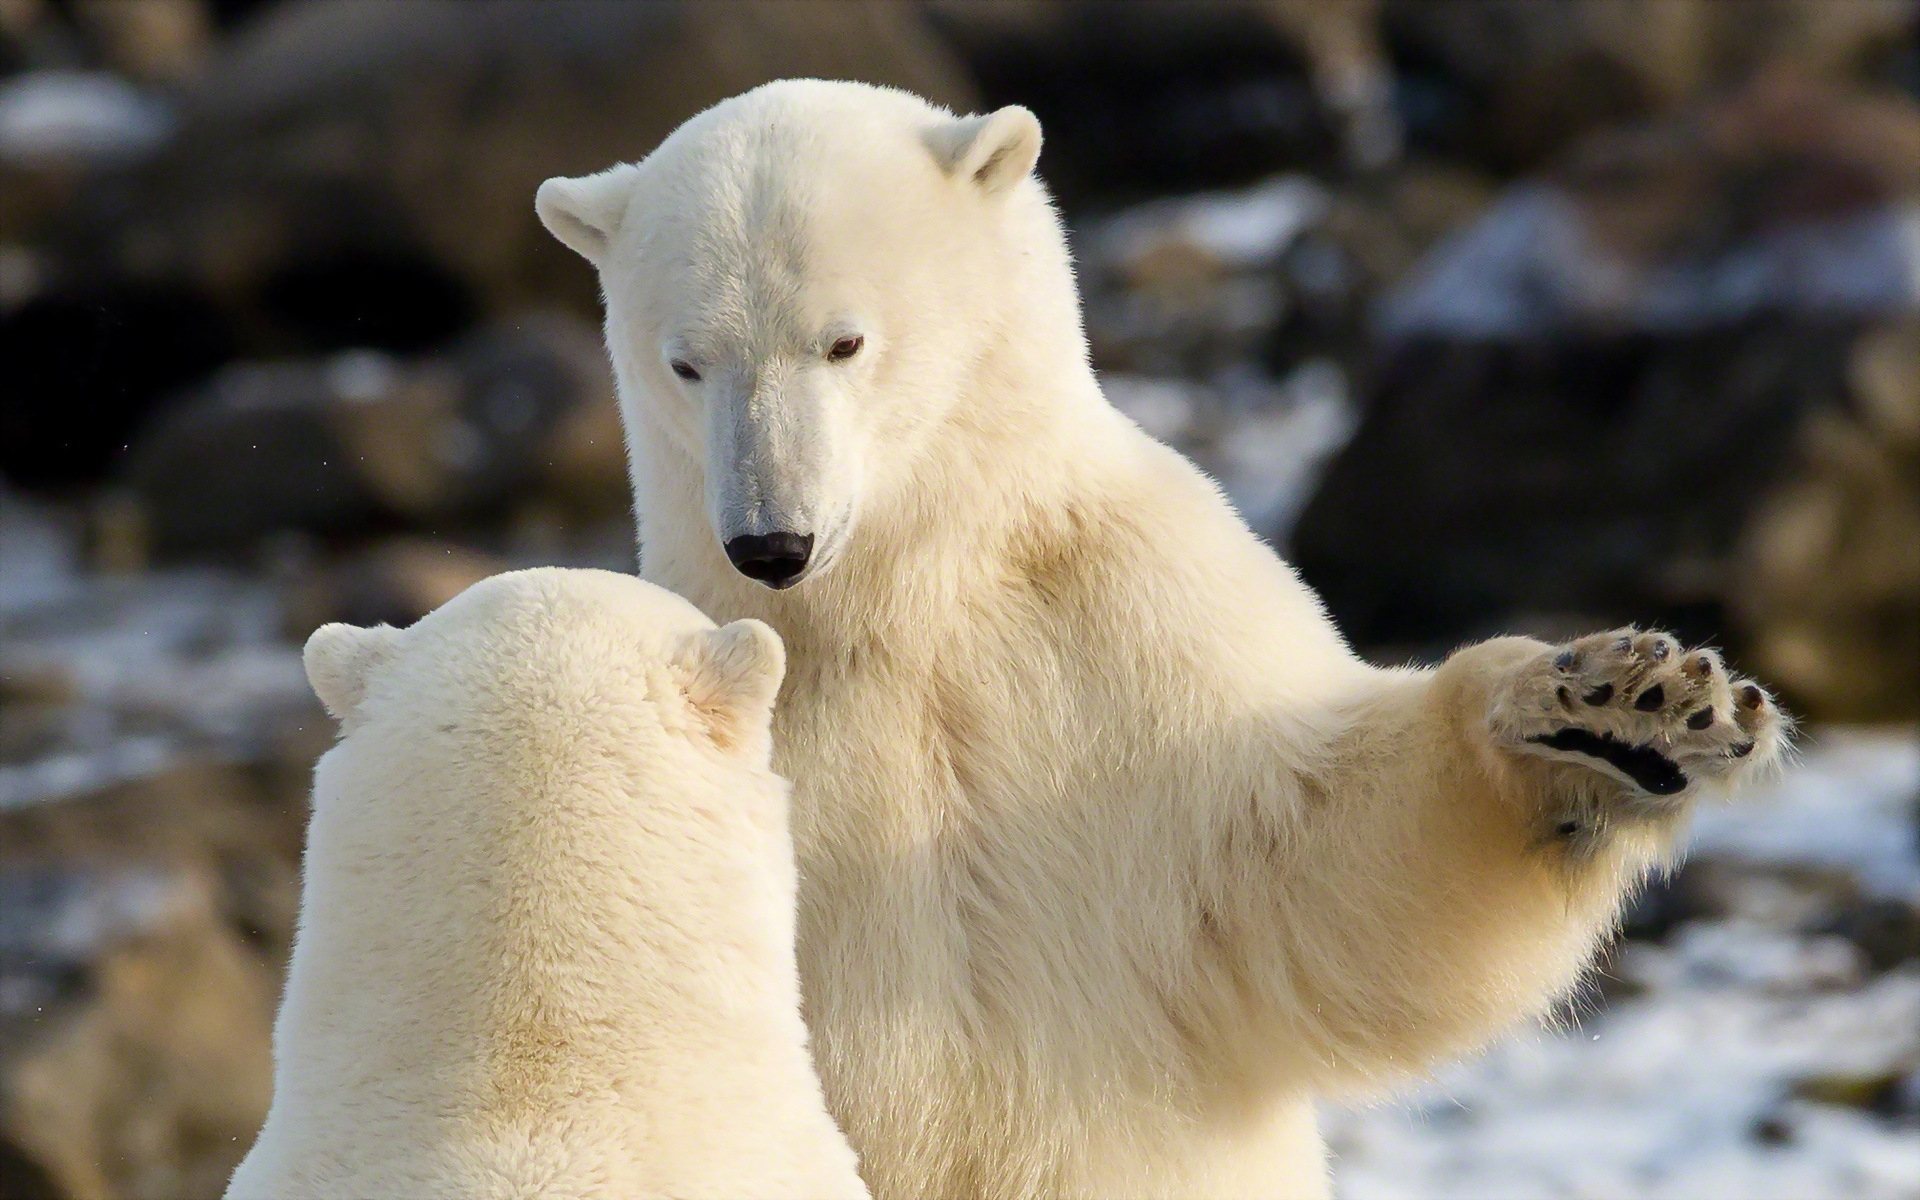 27435 download wallpaper Animals, Bears screensavers and pictures for free